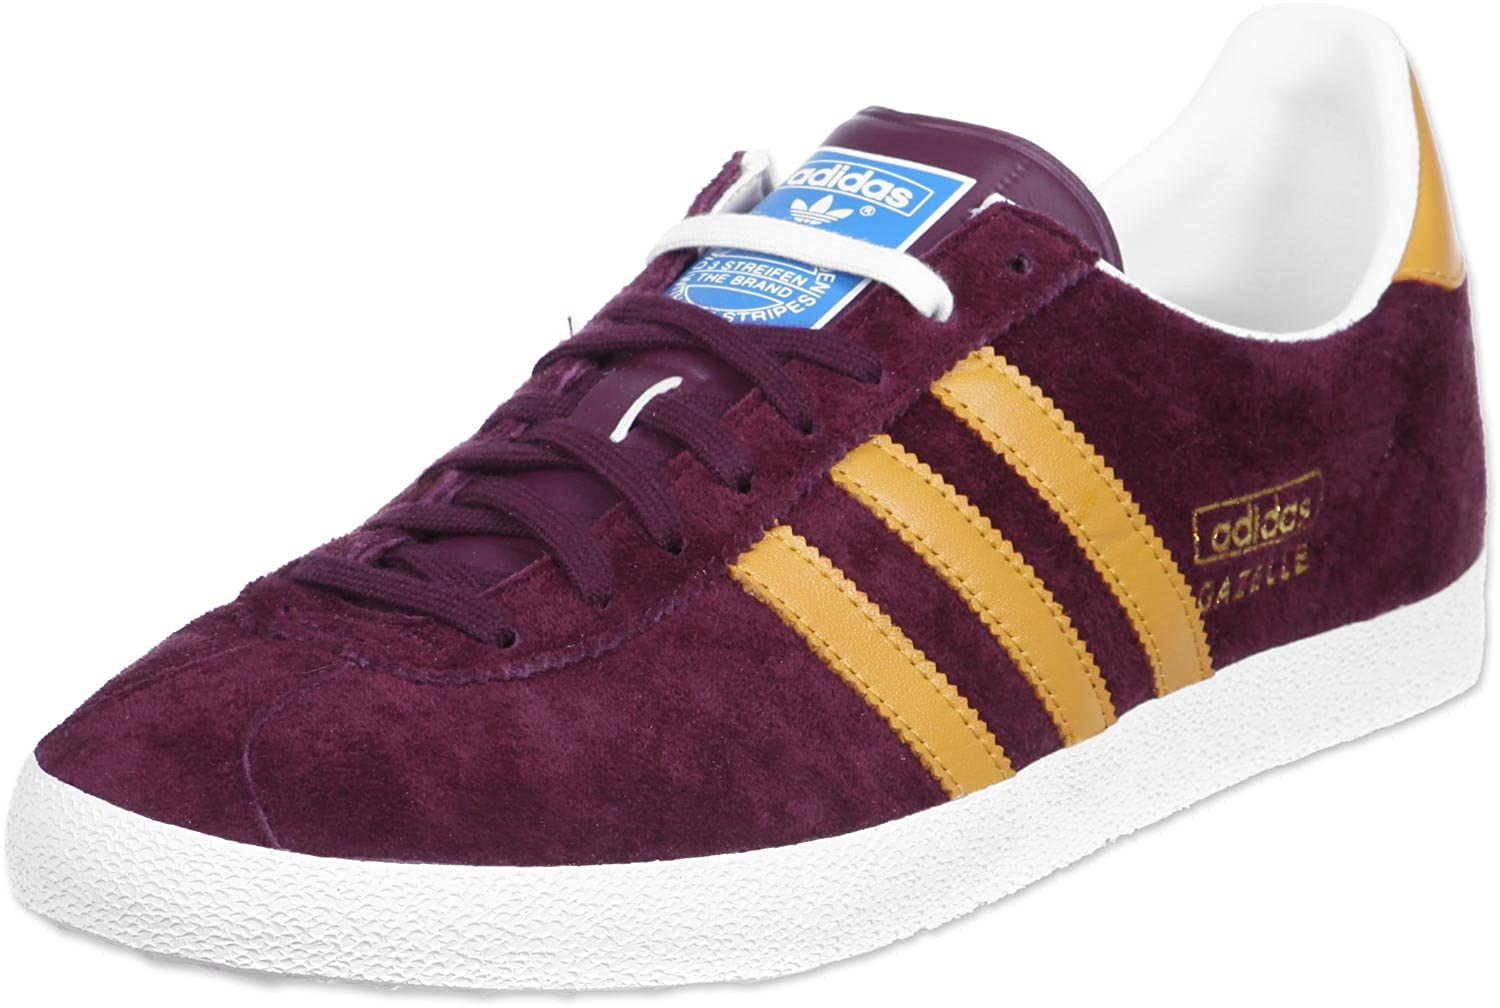 63f5161be7017 Adidas Gazelle OG Maroon Suede Leather Womens Trainers Size 4 UK ...